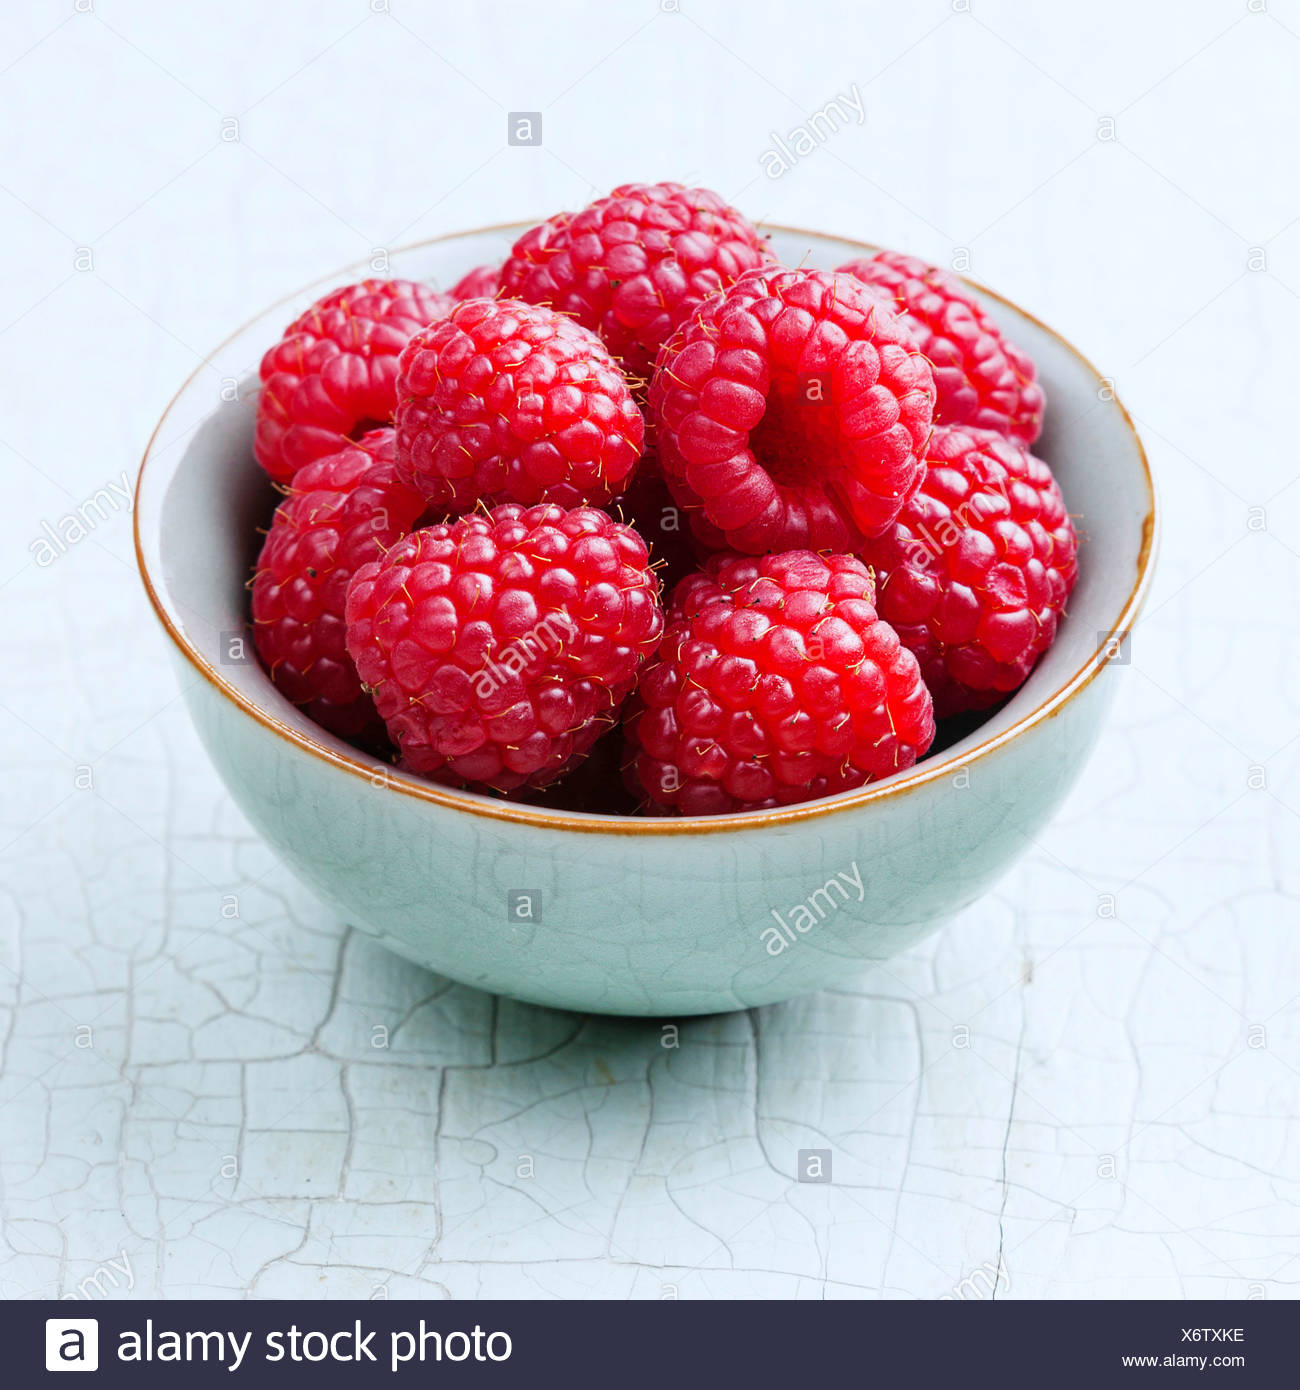 Raspberries in bowl on blue background - Stock Image